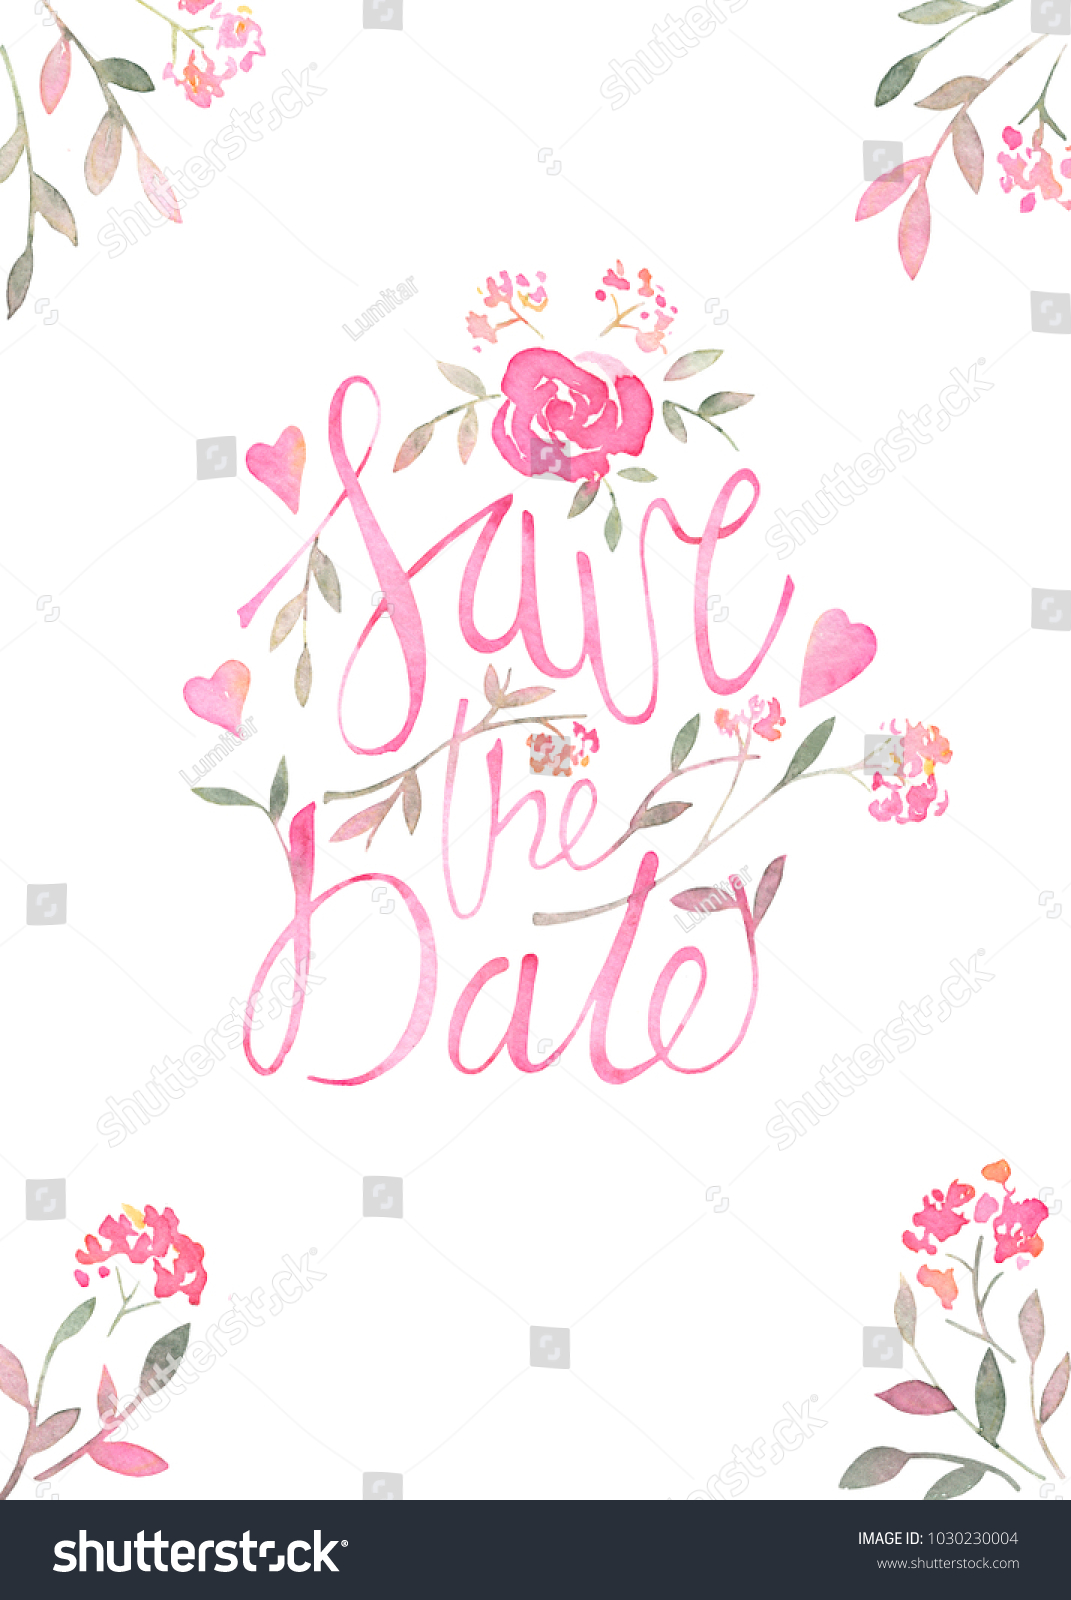 save the date romantic invitation card layout with watercolor